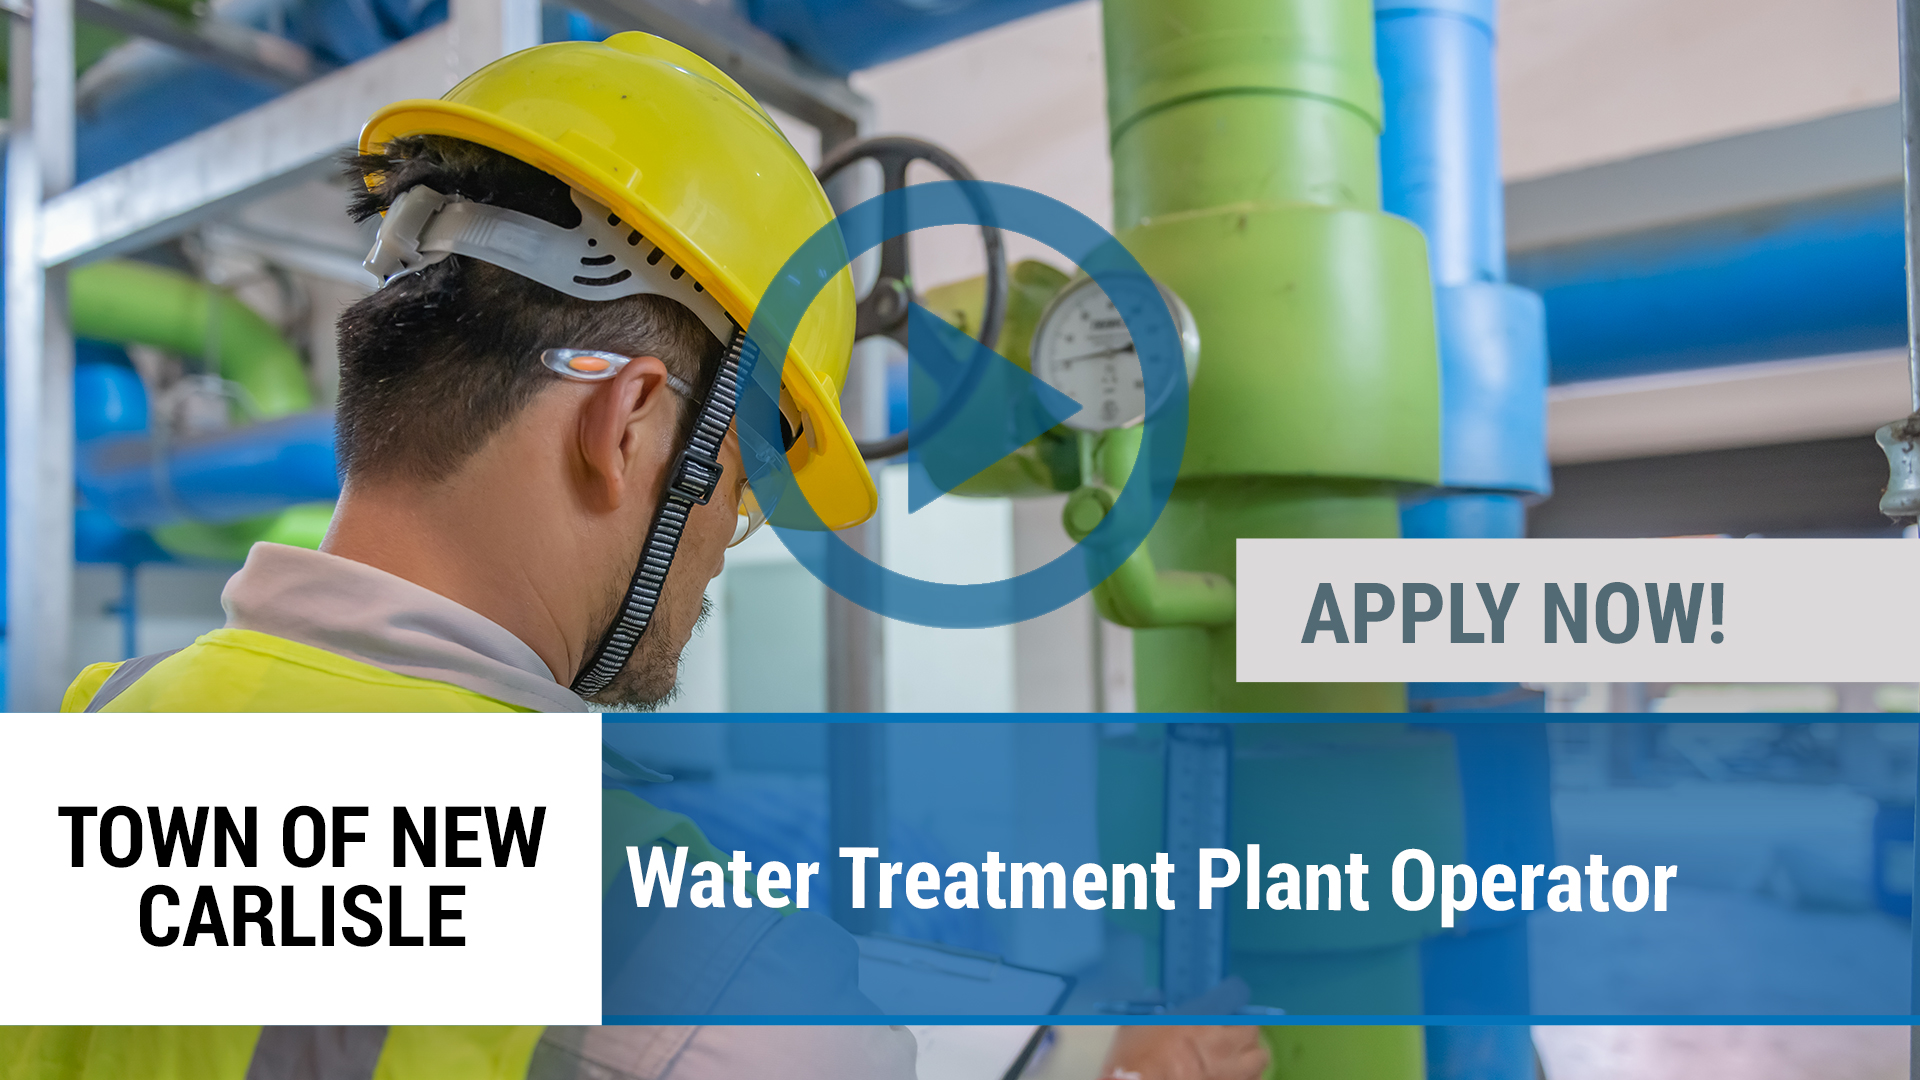 Watch our careers video for available job opening Water Treatment Plant Operator in New Carlisle, IN